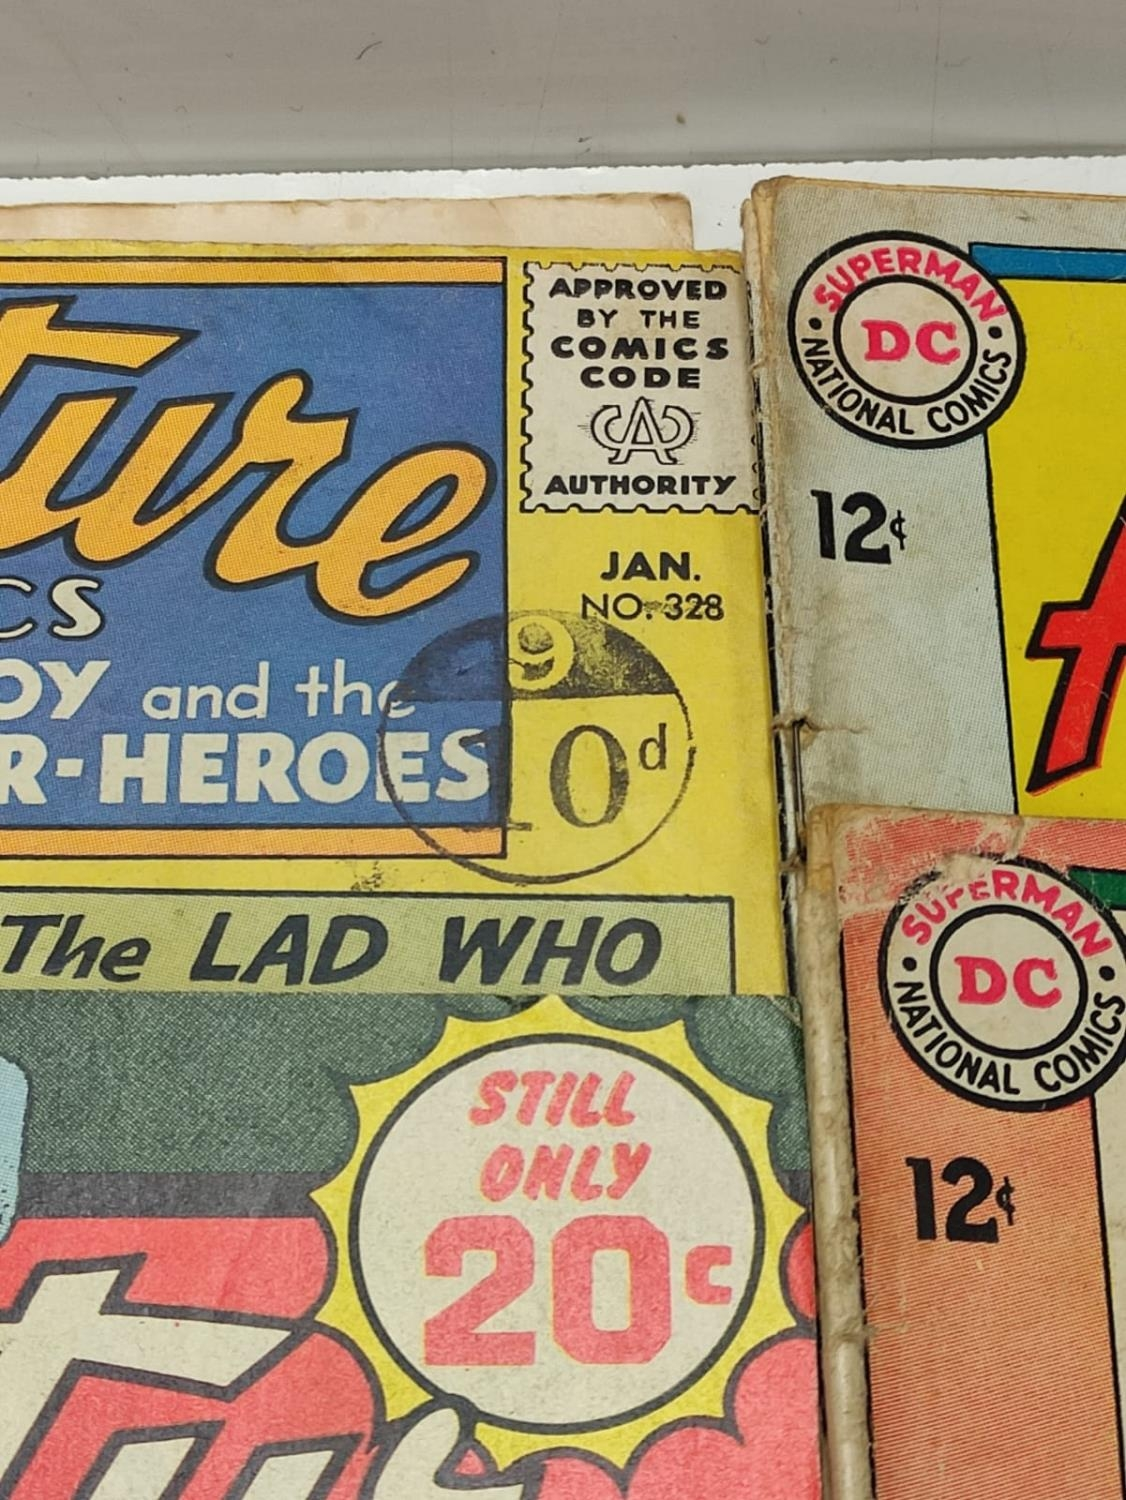 5 editions of DC Adventure Comics featuring Super-boy. - Image 18 of 19